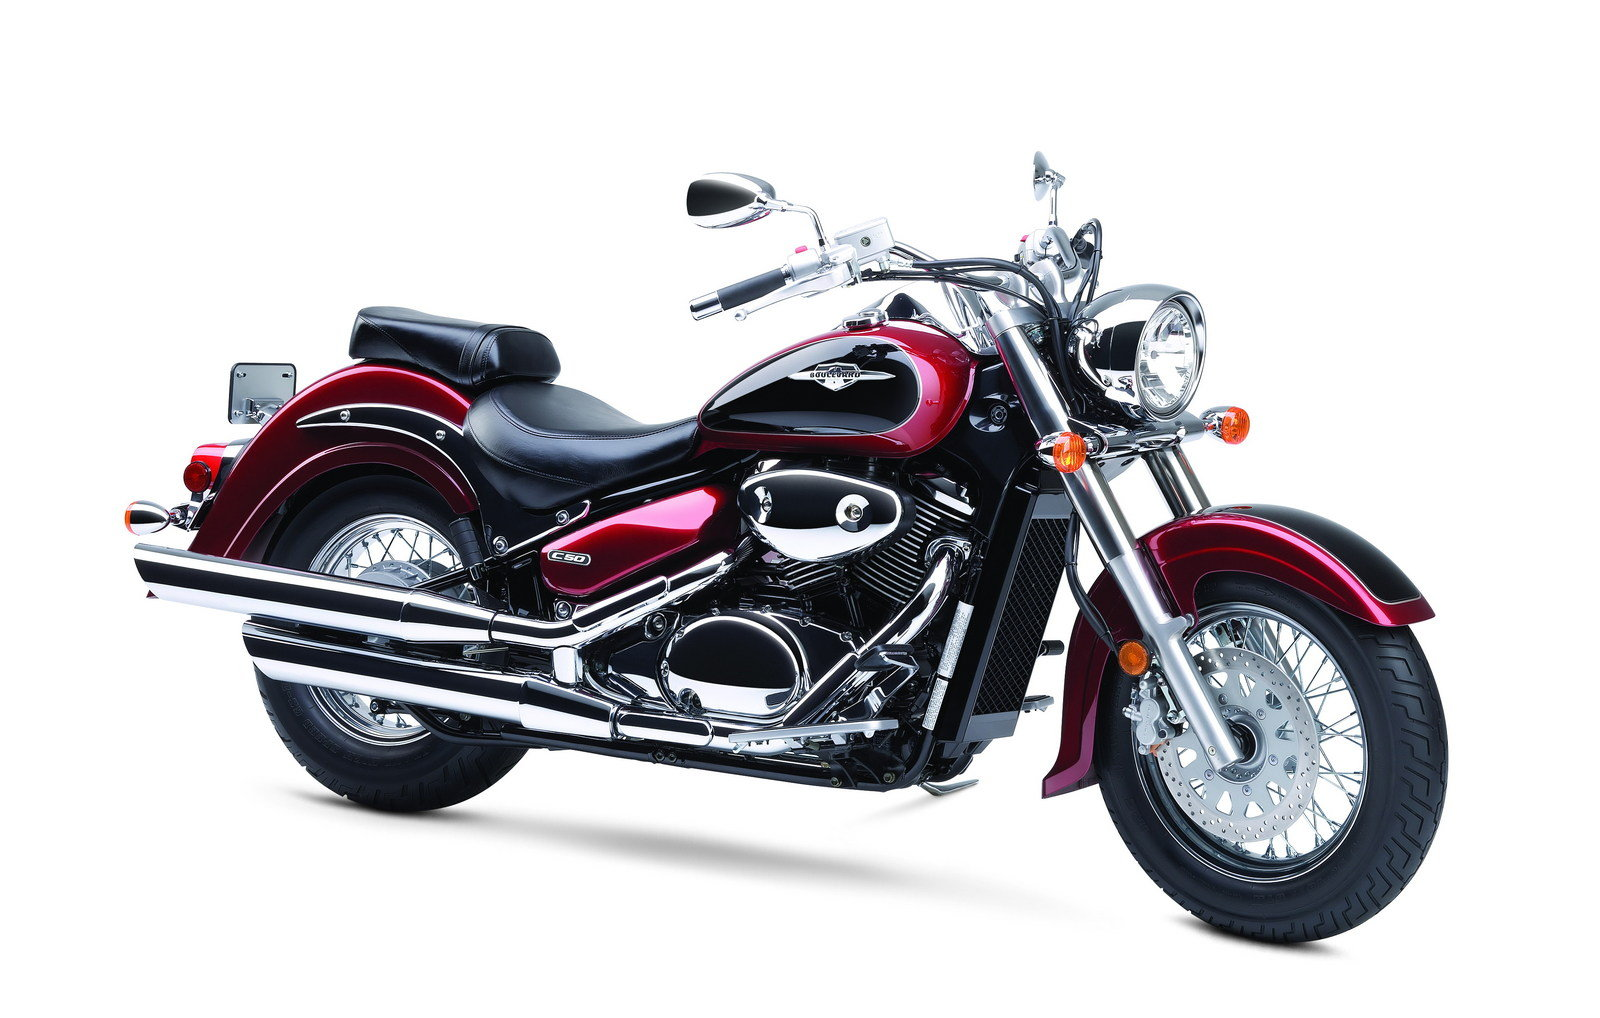 2005 Suzuki Boulevard C50 Wiring Diagram Html Auto Engine And Radio Schematic In Addition 2009 M50 Owners Manual Furthermore Club Car Carryall